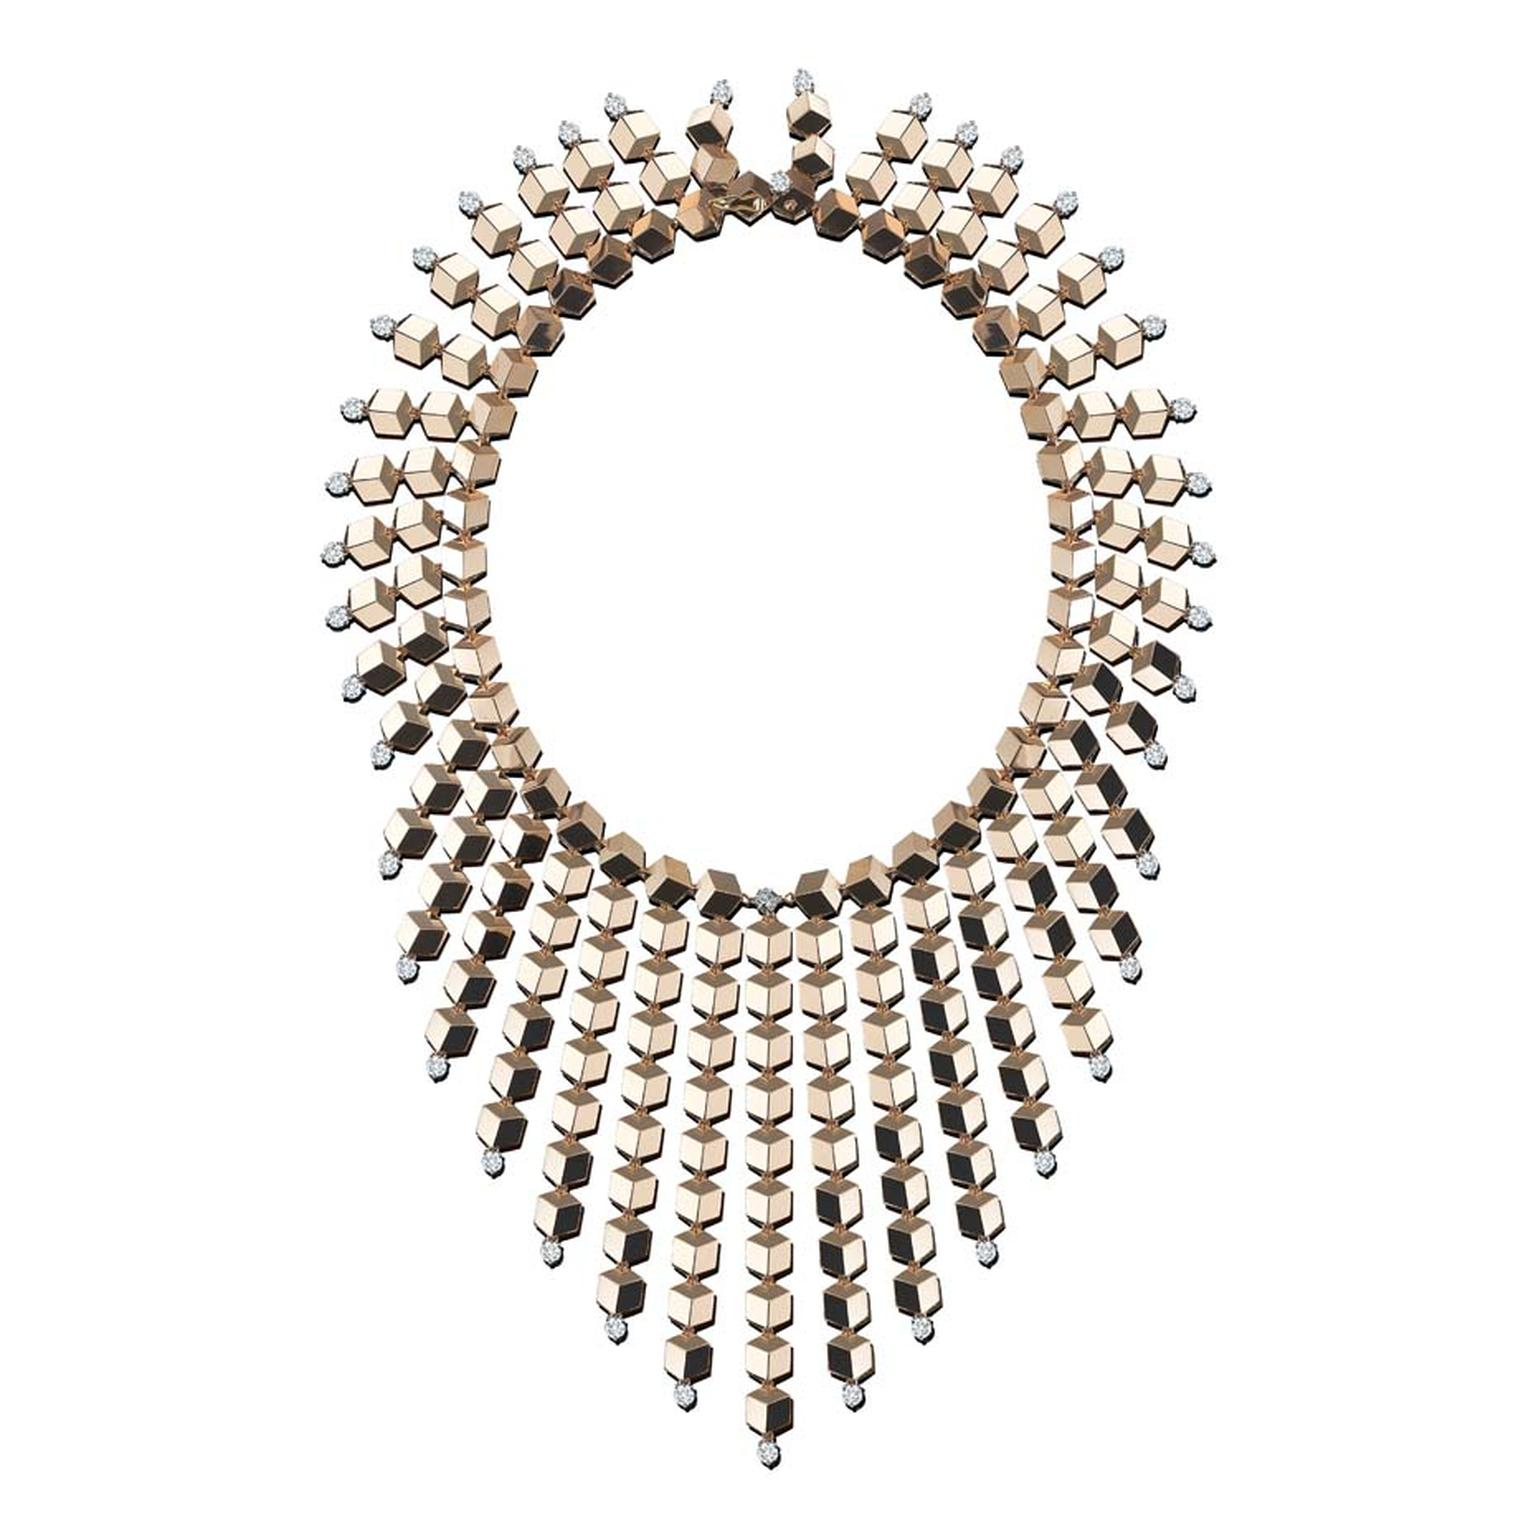 Geometric Jewellery: The Sharp Edge Of Style | The Jewellery Editor Throughout Most Popular Geometric Lines Necklaces (View 6 of 25)